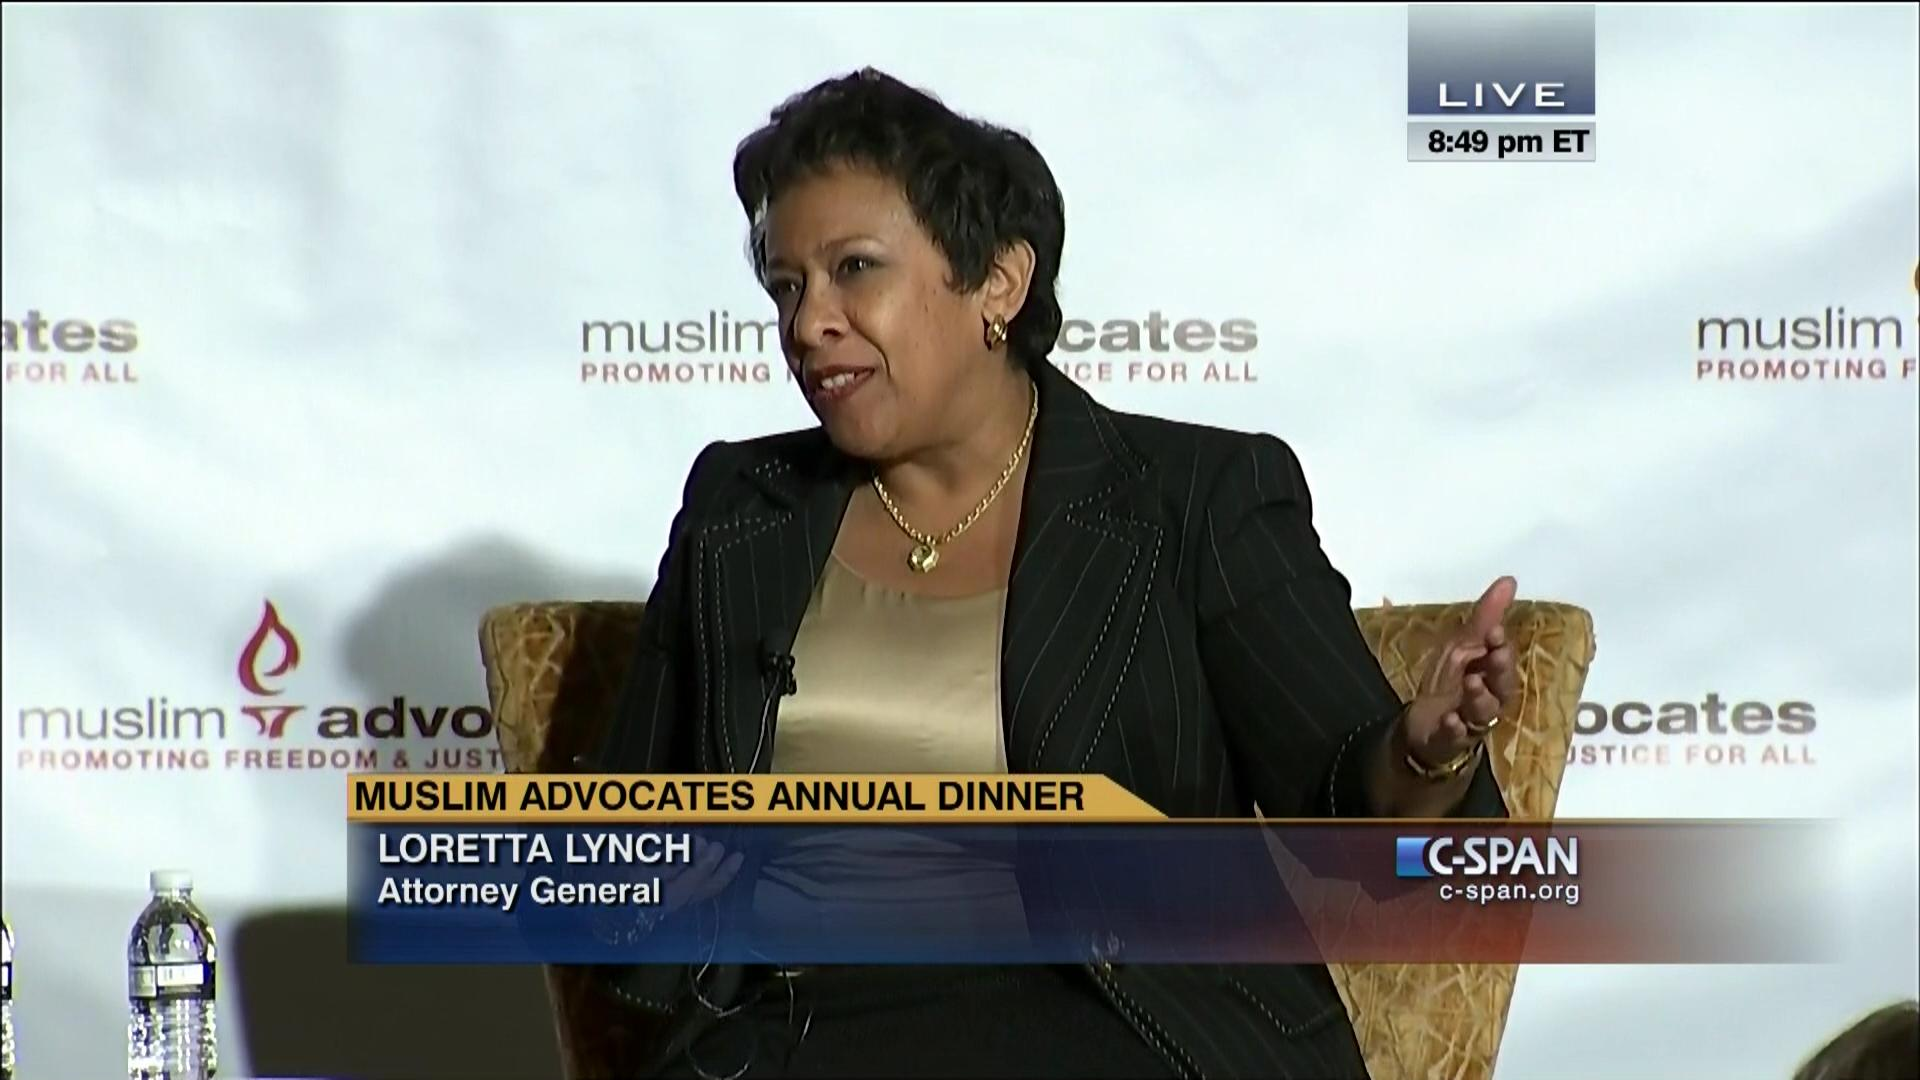 attorney general loretta lynch remarks muslim video c span org